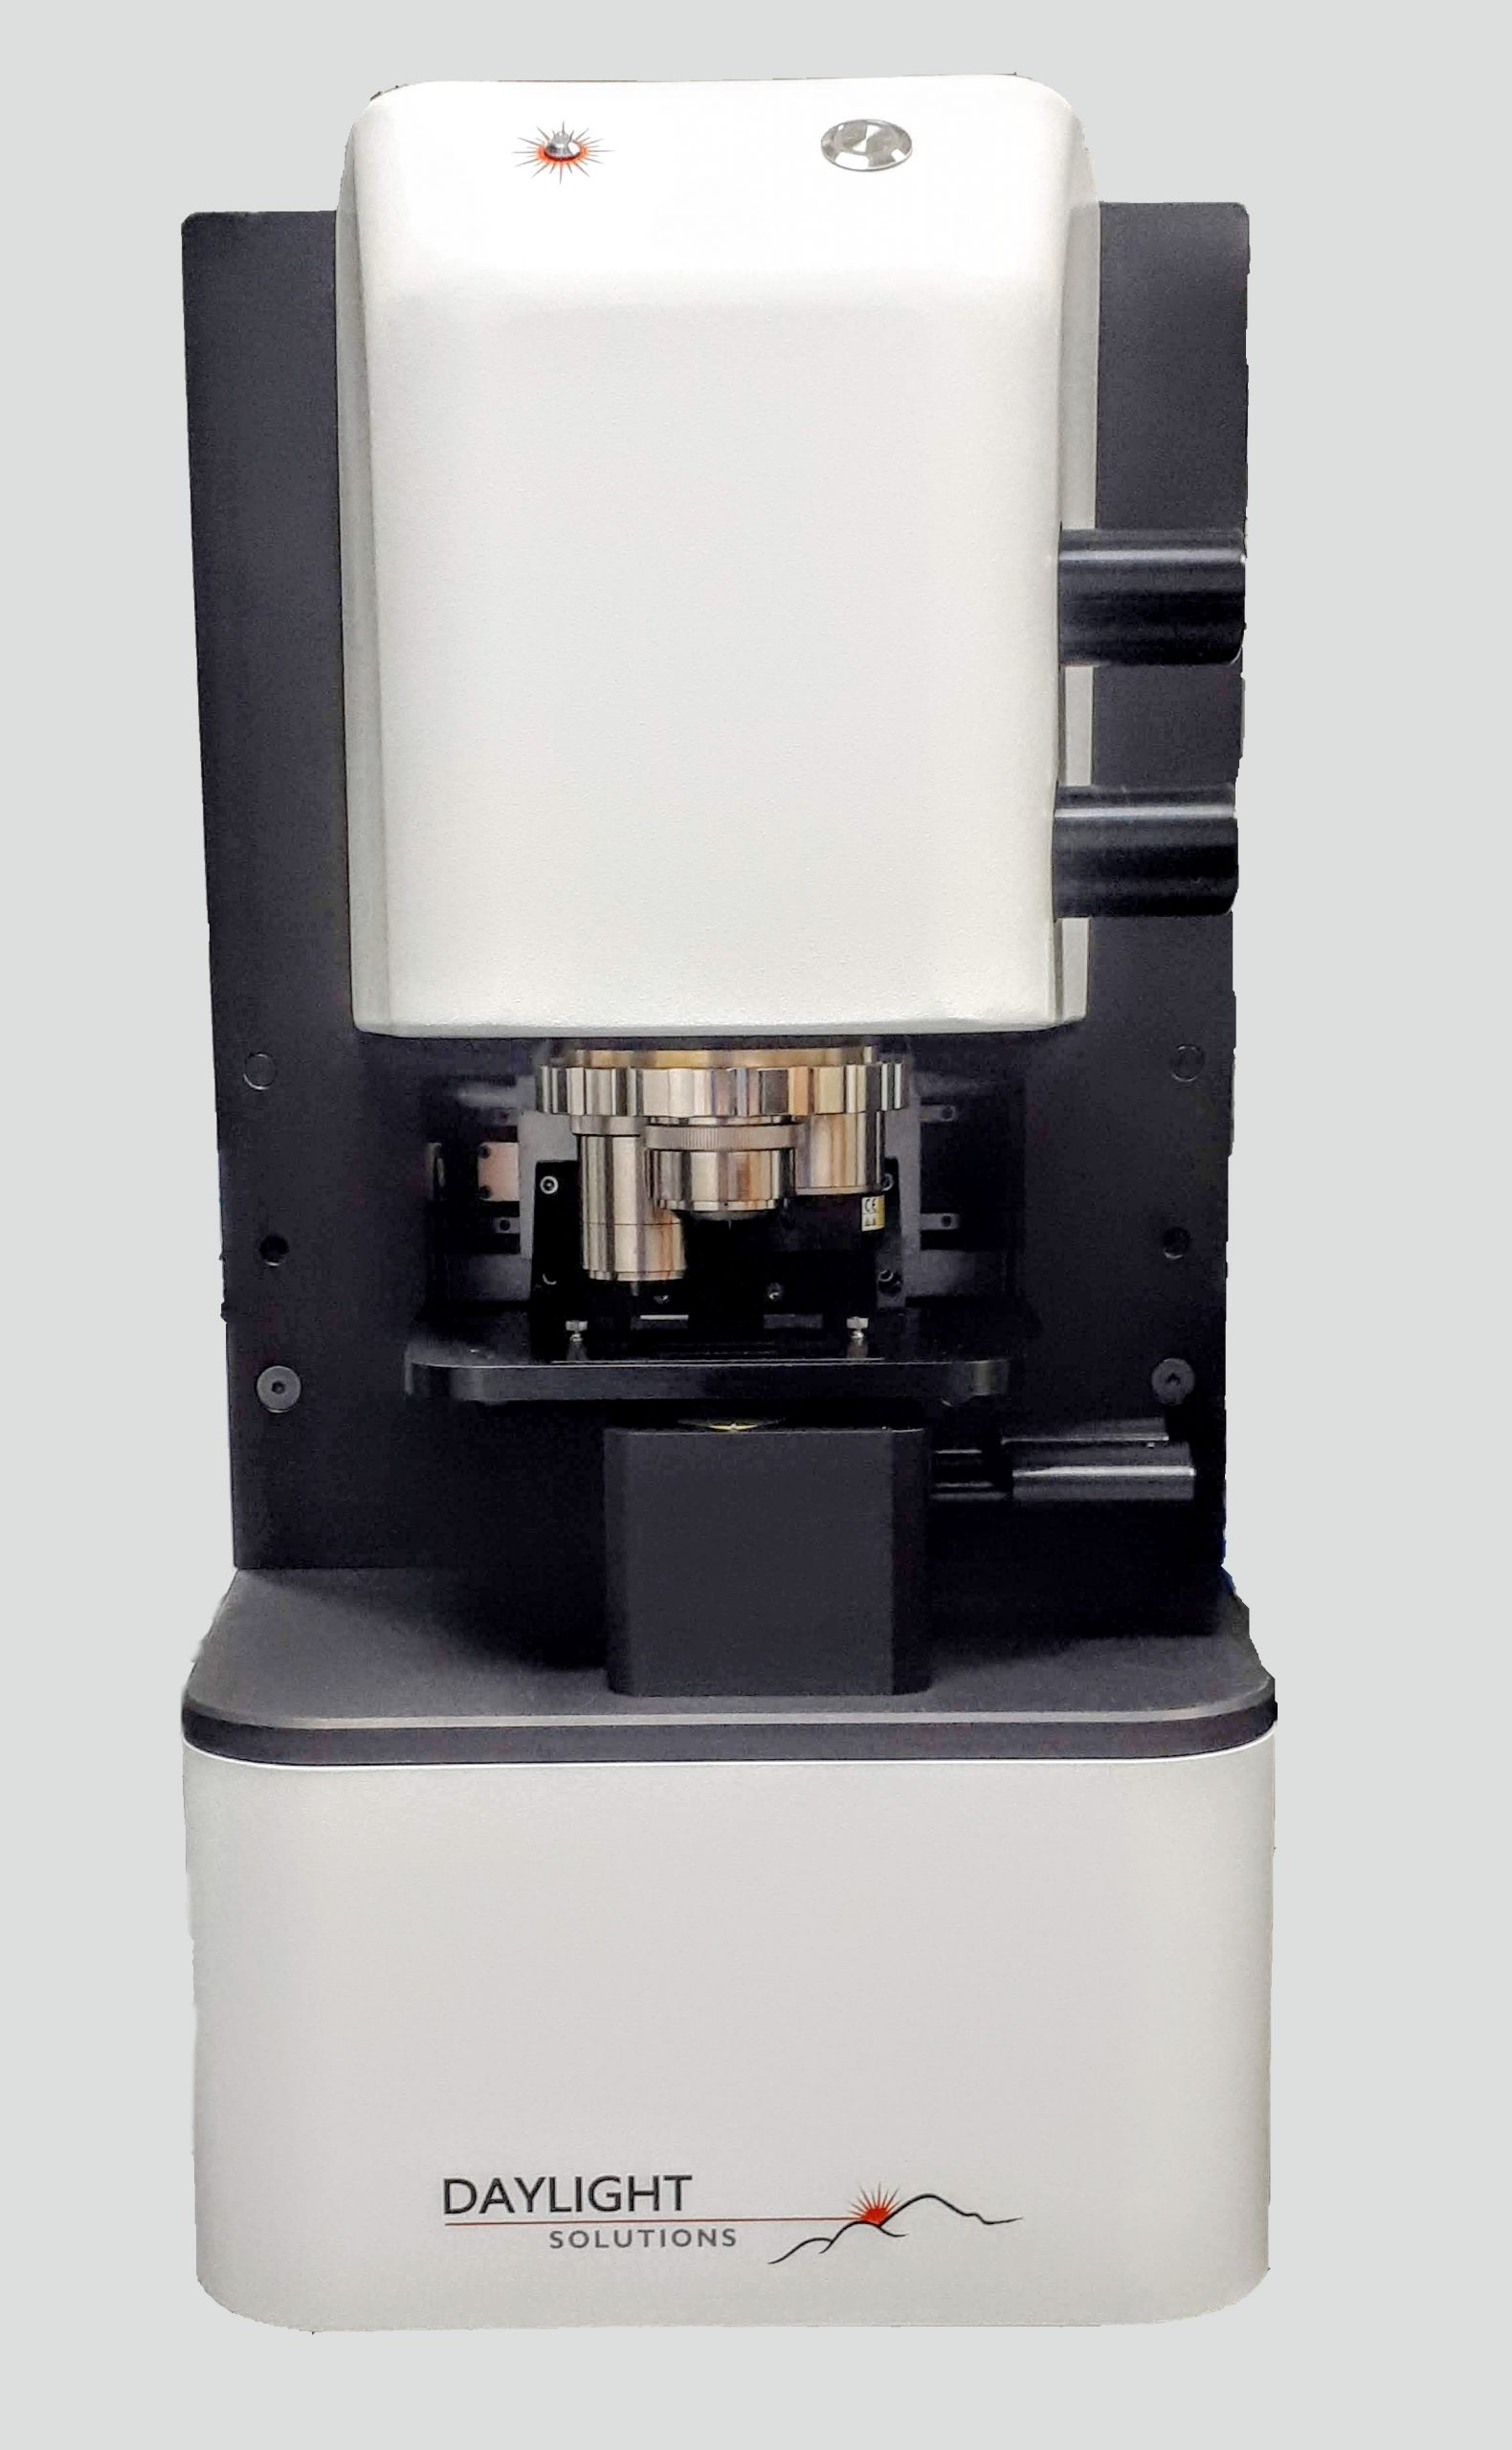 CAPPA Expands Service Offering with Purchase of New Quantum Cascade Laser (QCL) - CAPPA